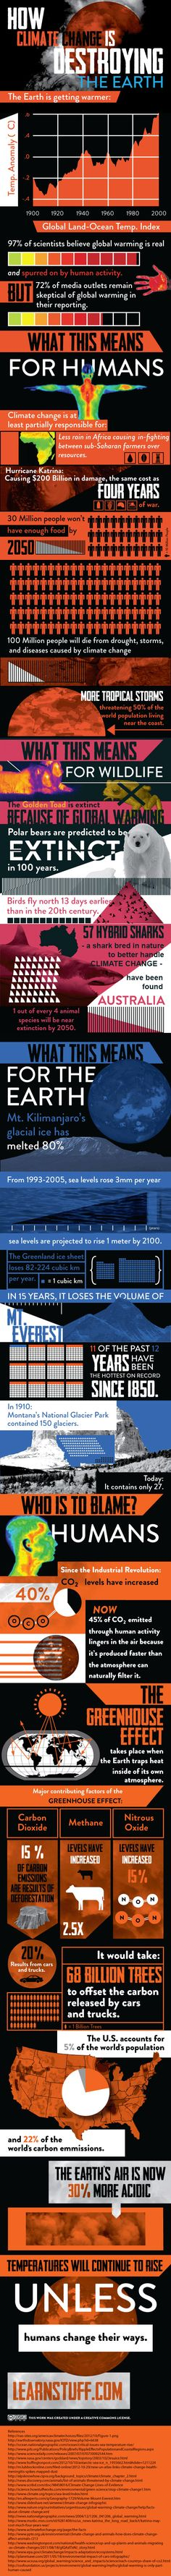 LearnStuff's Infographic Explains How Climate Change is Destroying the Earth